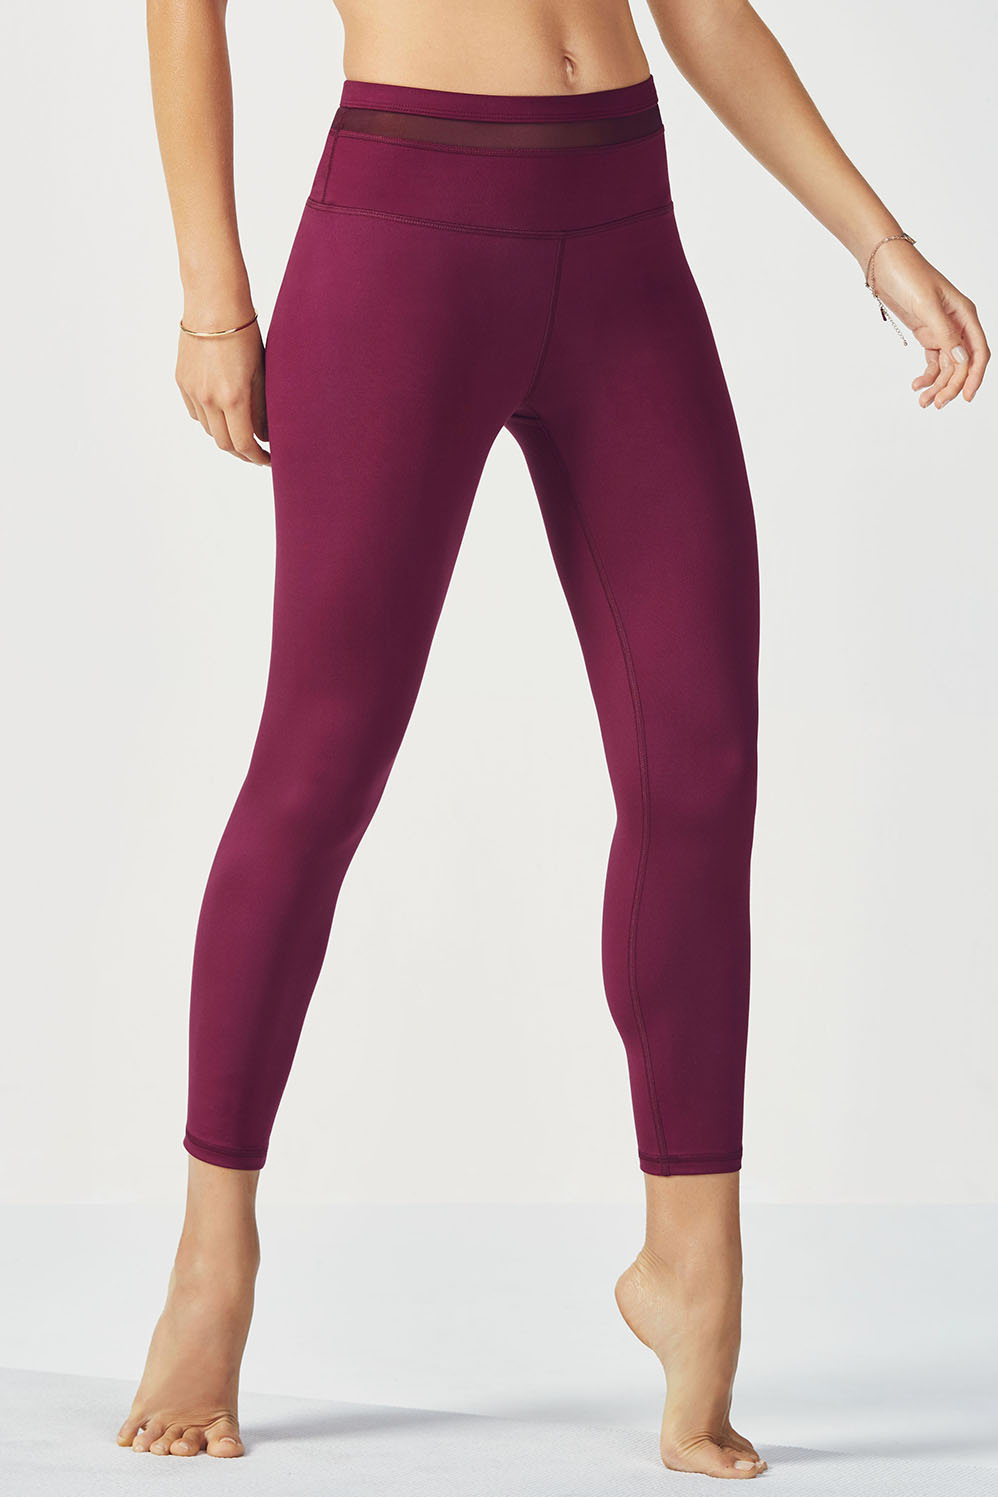 Yoga Leggings, Running Tights & Workout Leggings for Women | Fabletics